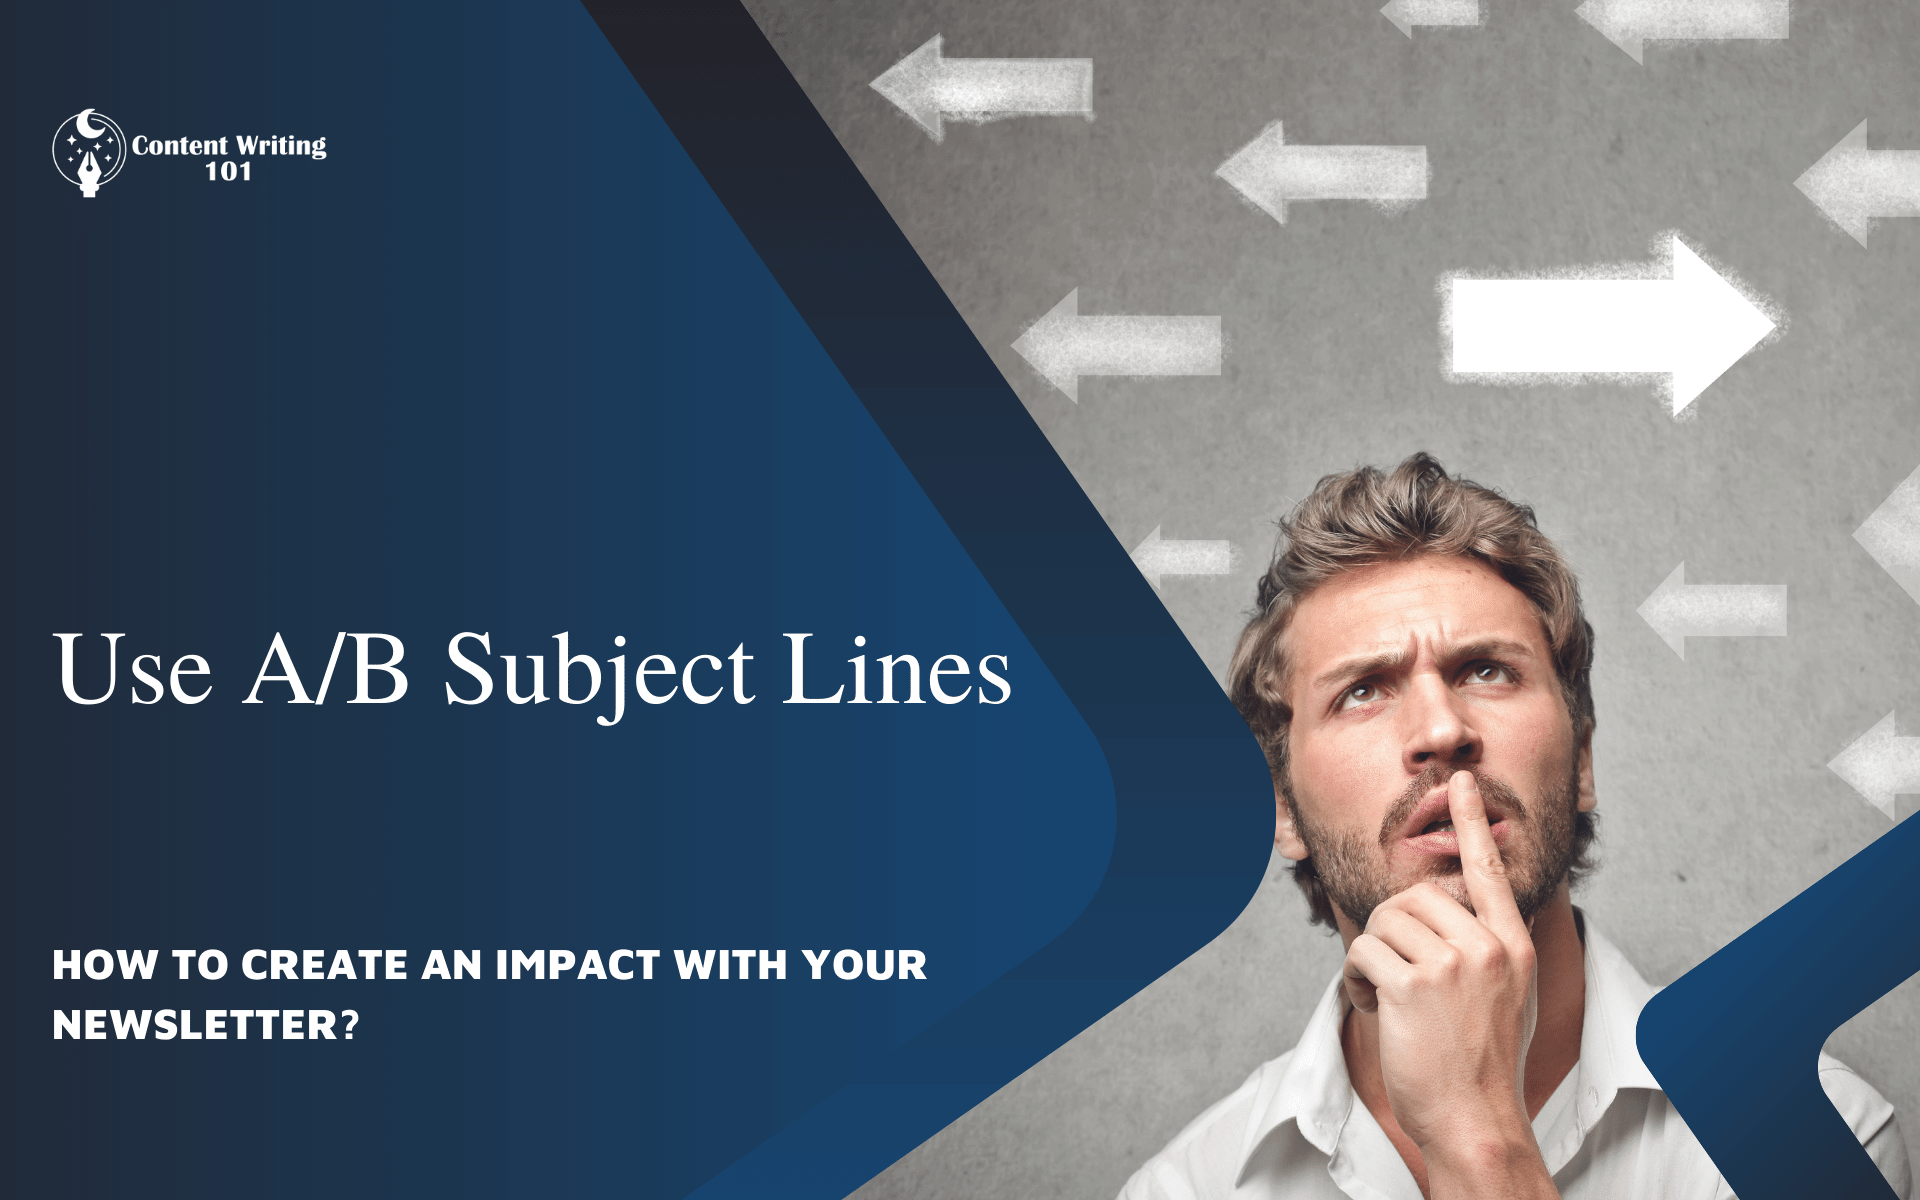 Use A/B Subject Lines.